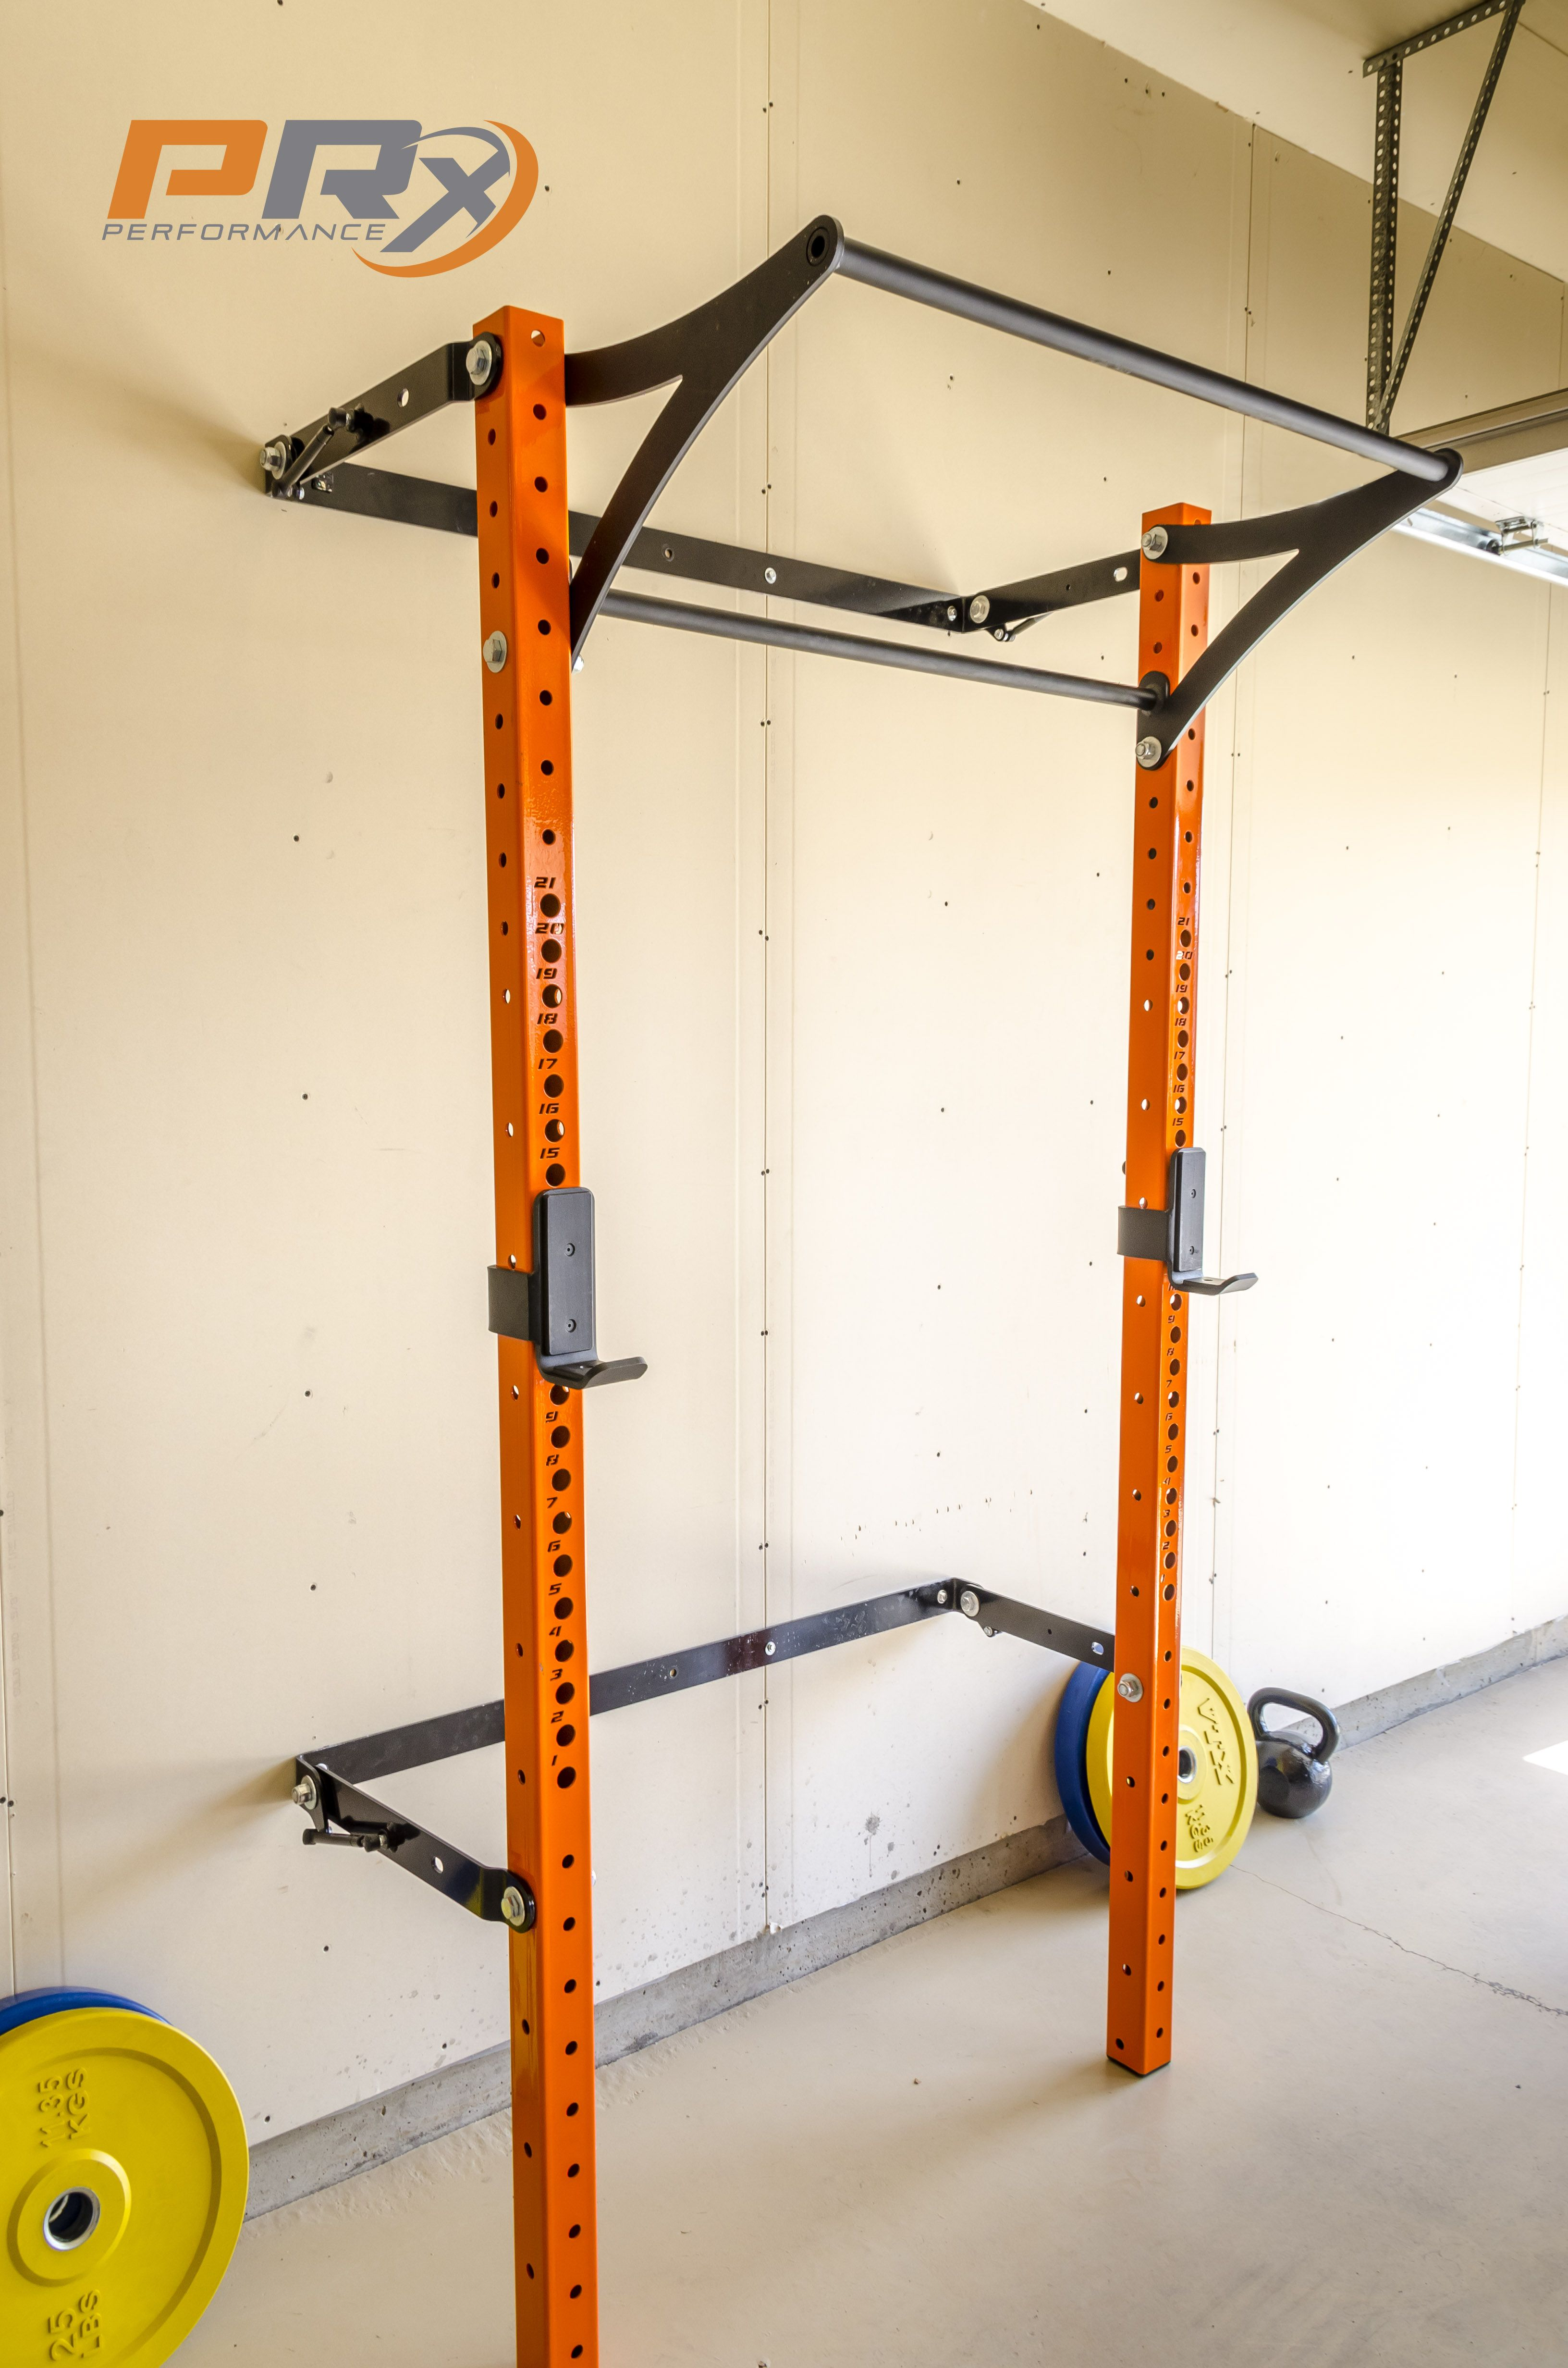 Diy Garage Gym Equipment The Space Saving Squat Rack Down And Ready To Do Some Work